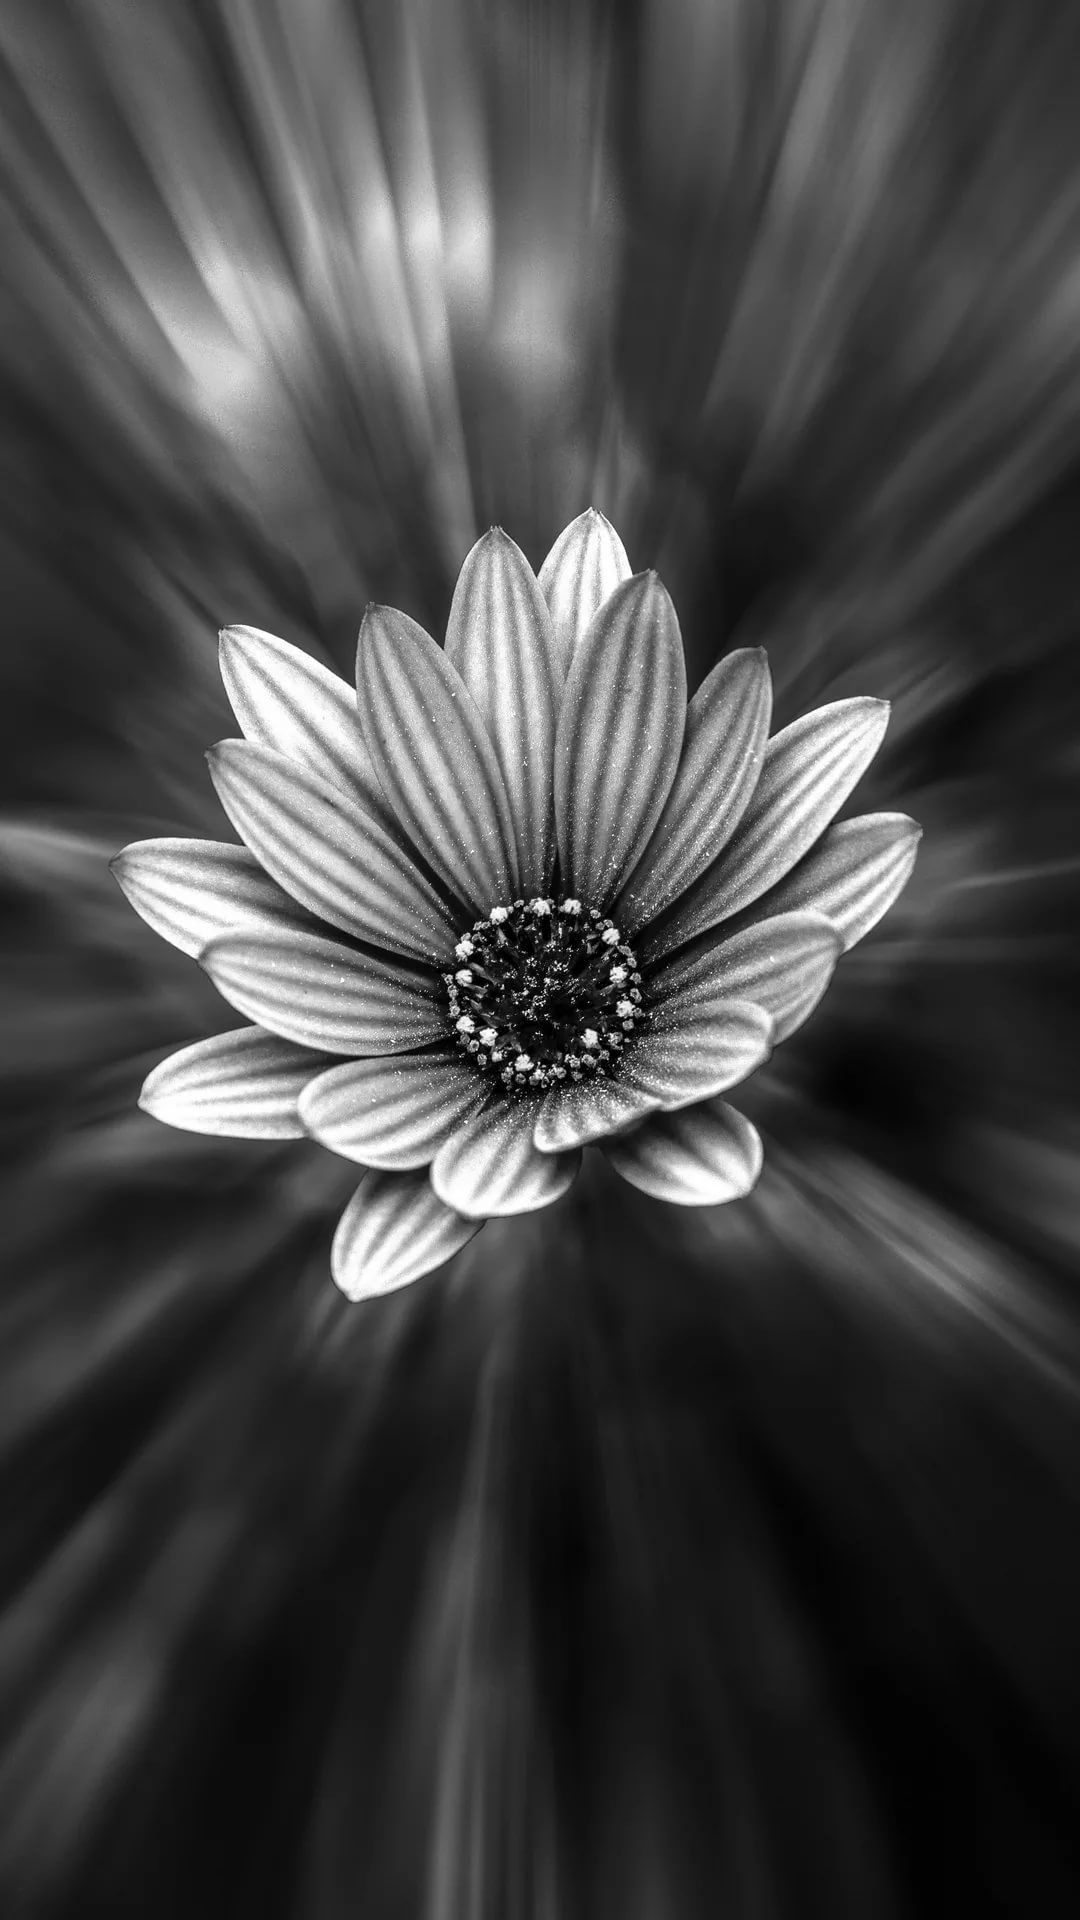 Black And White Flower Iphone Wallpapers Wallpaperboat